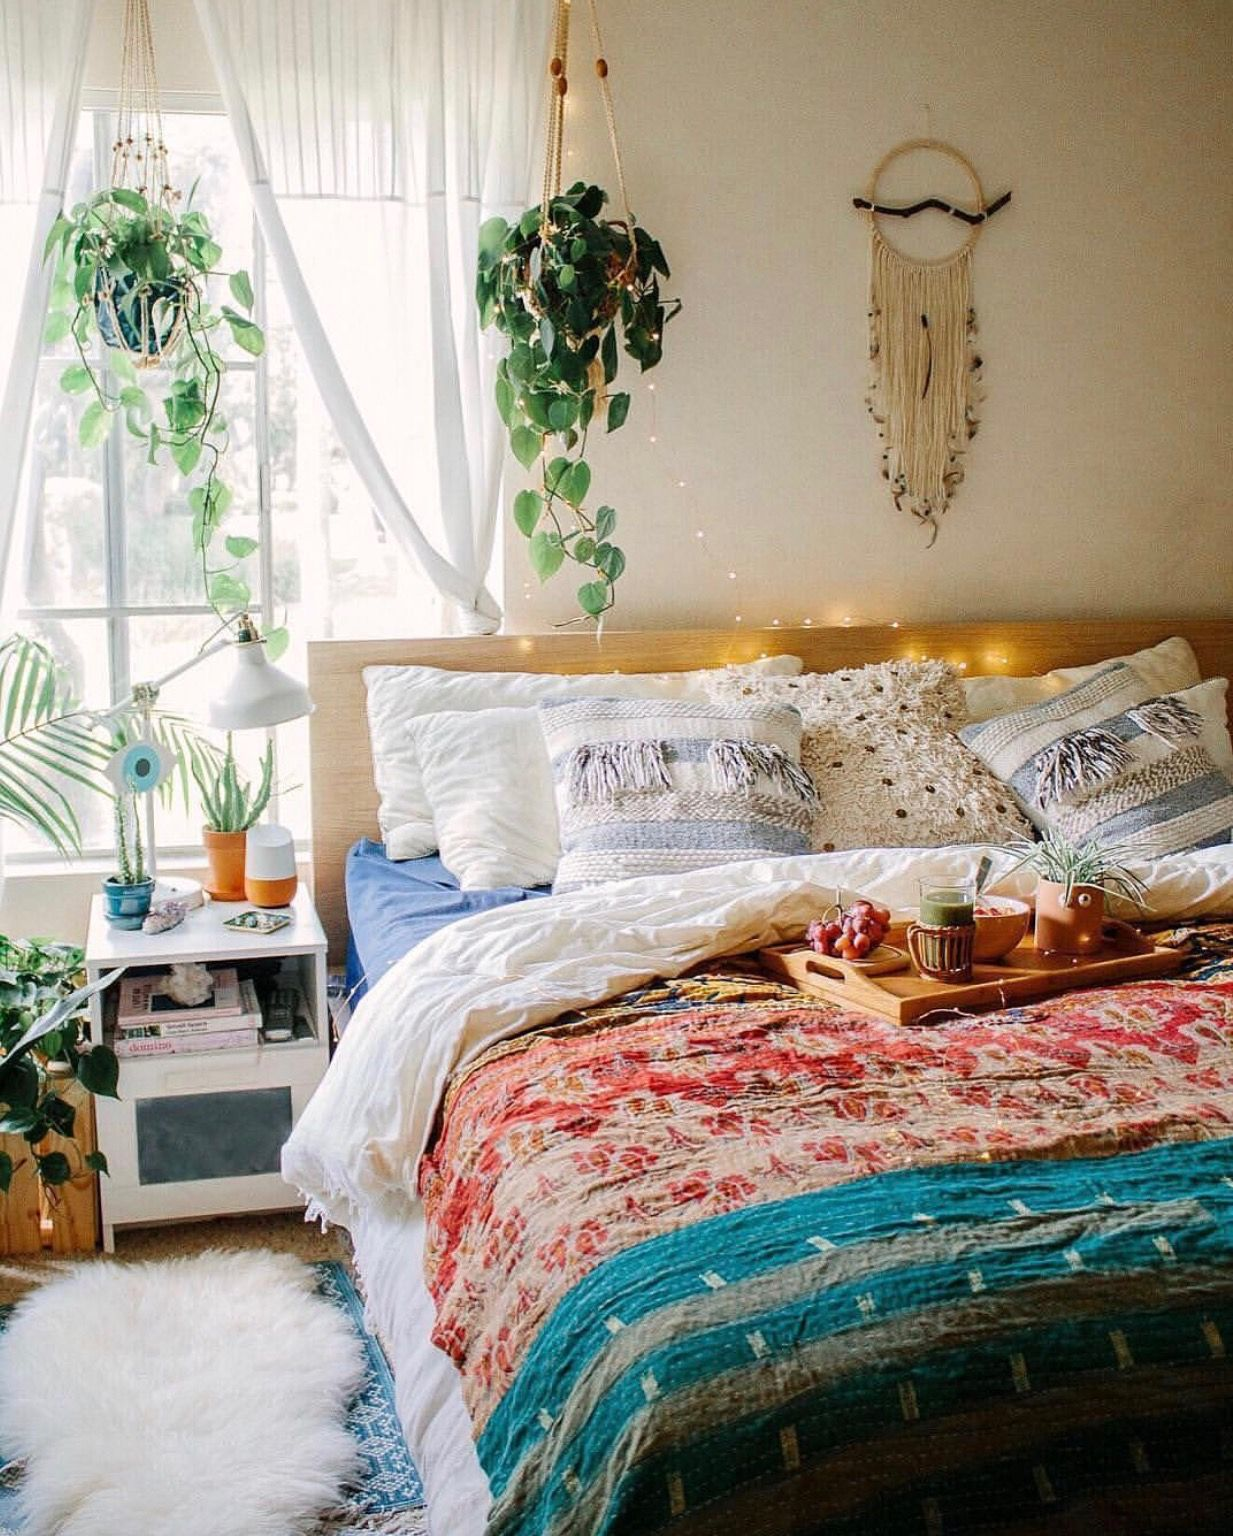 Pin by heidi nichole on interior (With images) | Bedroom ... on Boho Bedroom Ideas On A Budget  id=60169